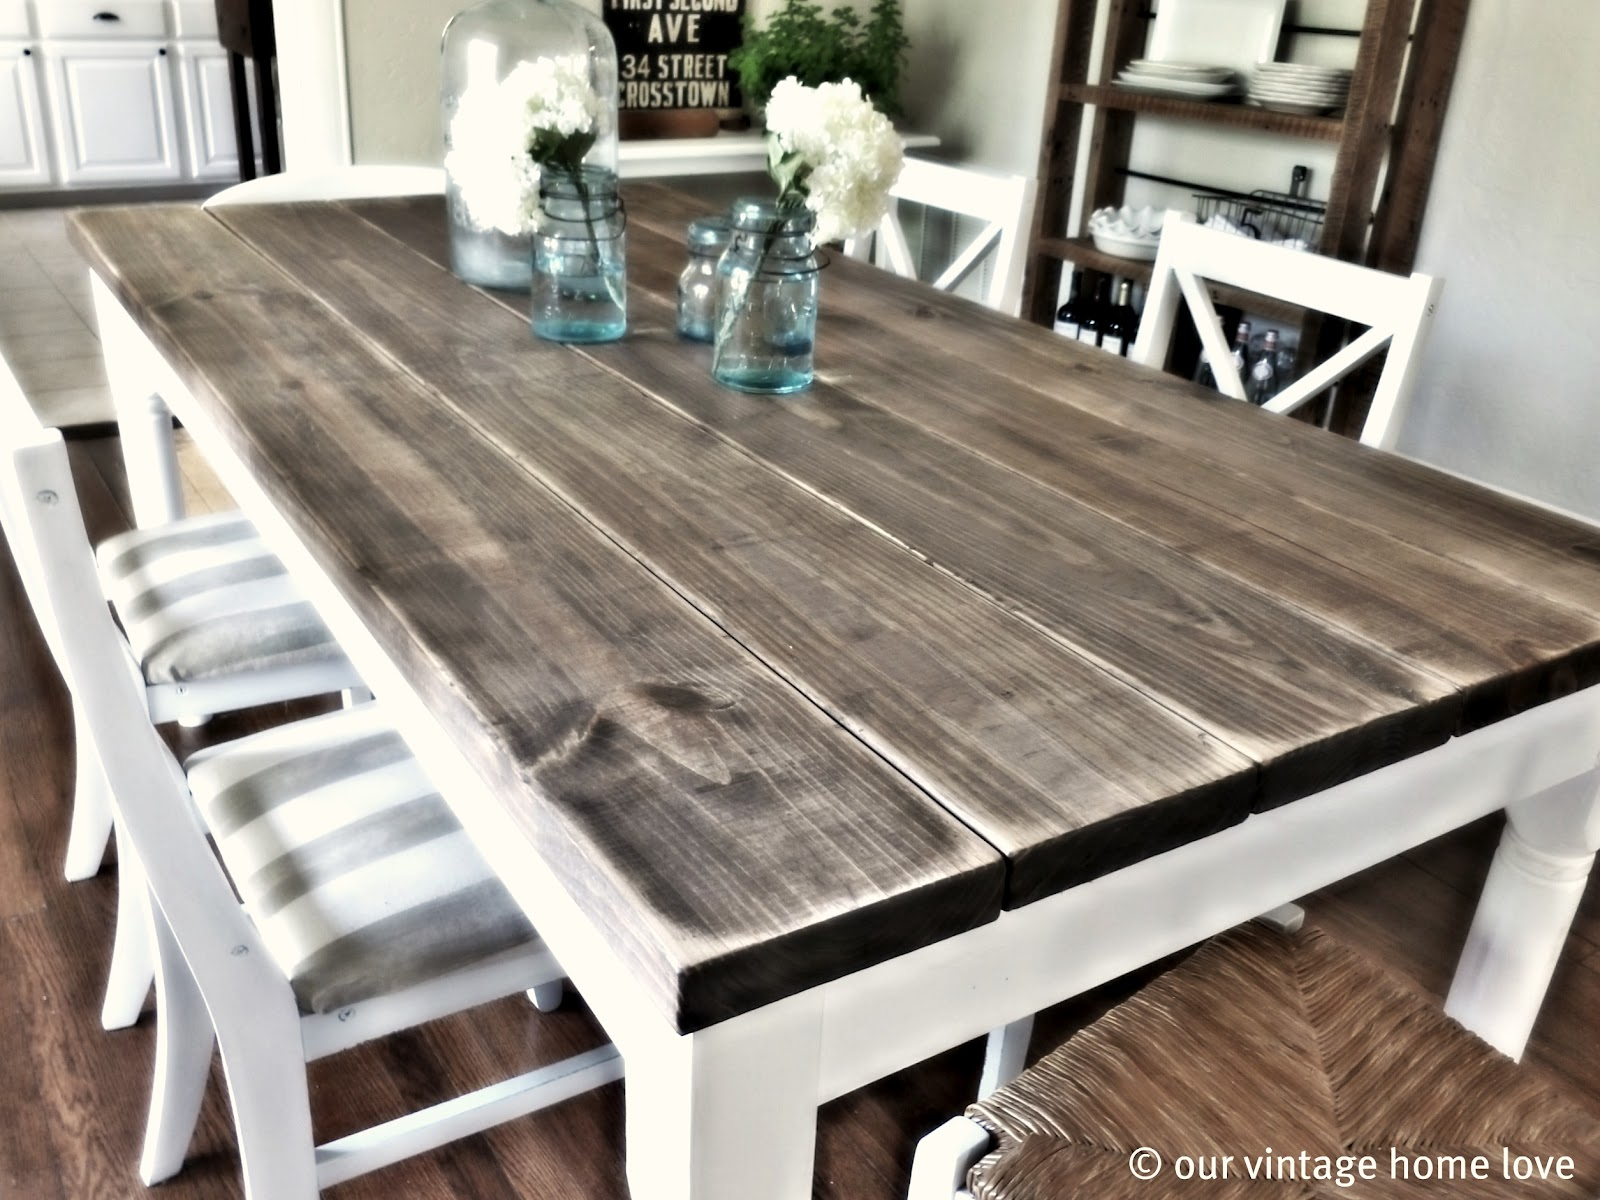 Vintage home love dining room table tutorial for Images of dining room tables